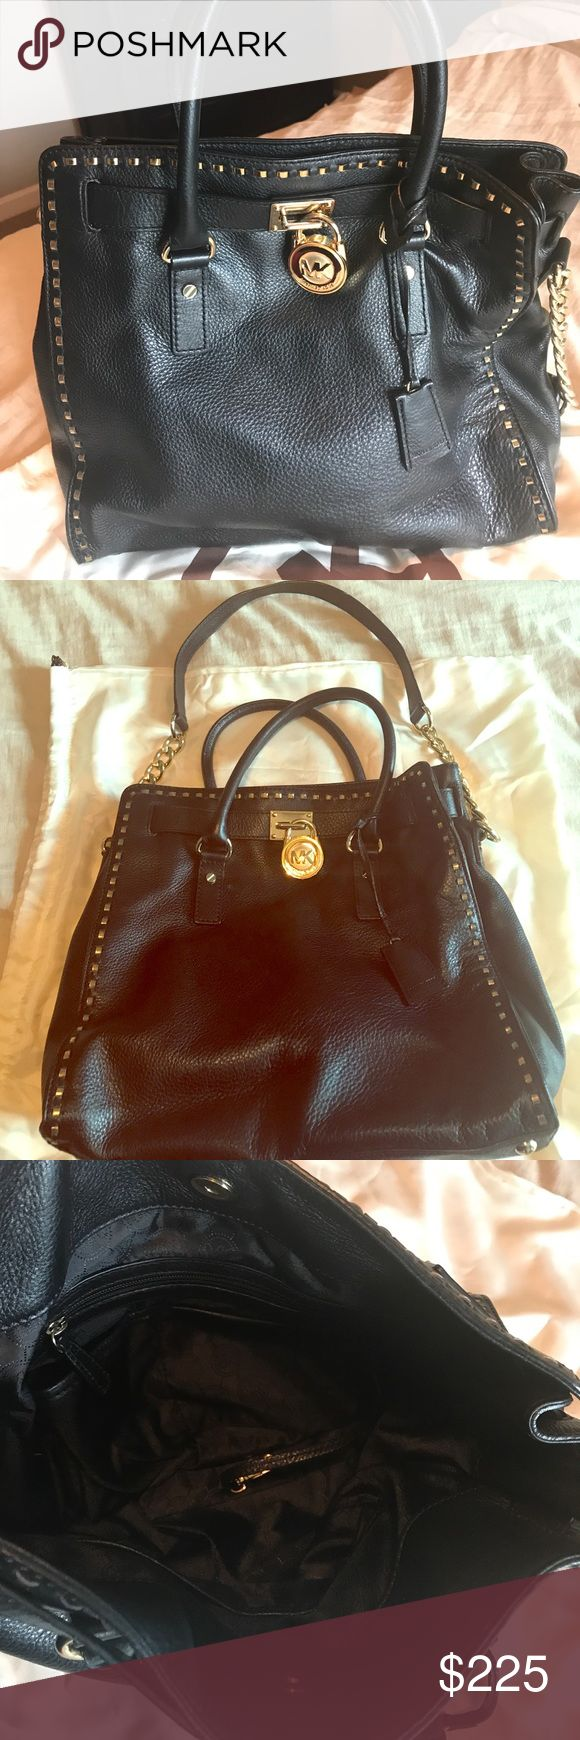 Michael Kors Hamilton tote Michael Kors Hamilton tote. Great condition. Black and gold. Short and long handles. Michael Kors Bags Totes